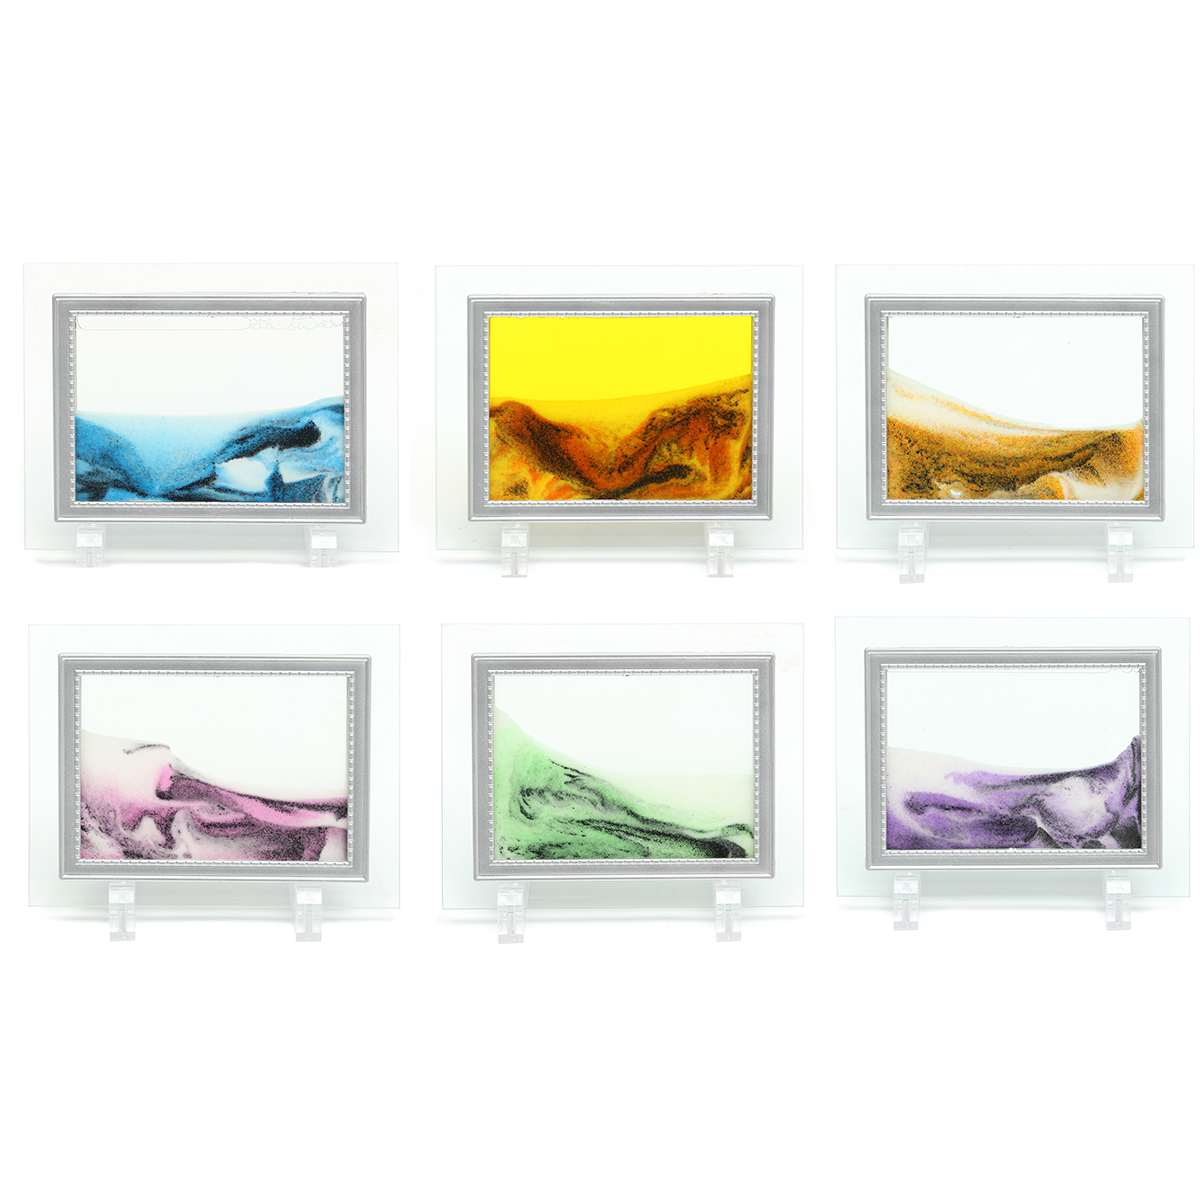 Framed Moving Sand Time Liquid Landscape Glass Picture Home Office Ornaments Decoration Accessories Craft Art Gift 13X17cm